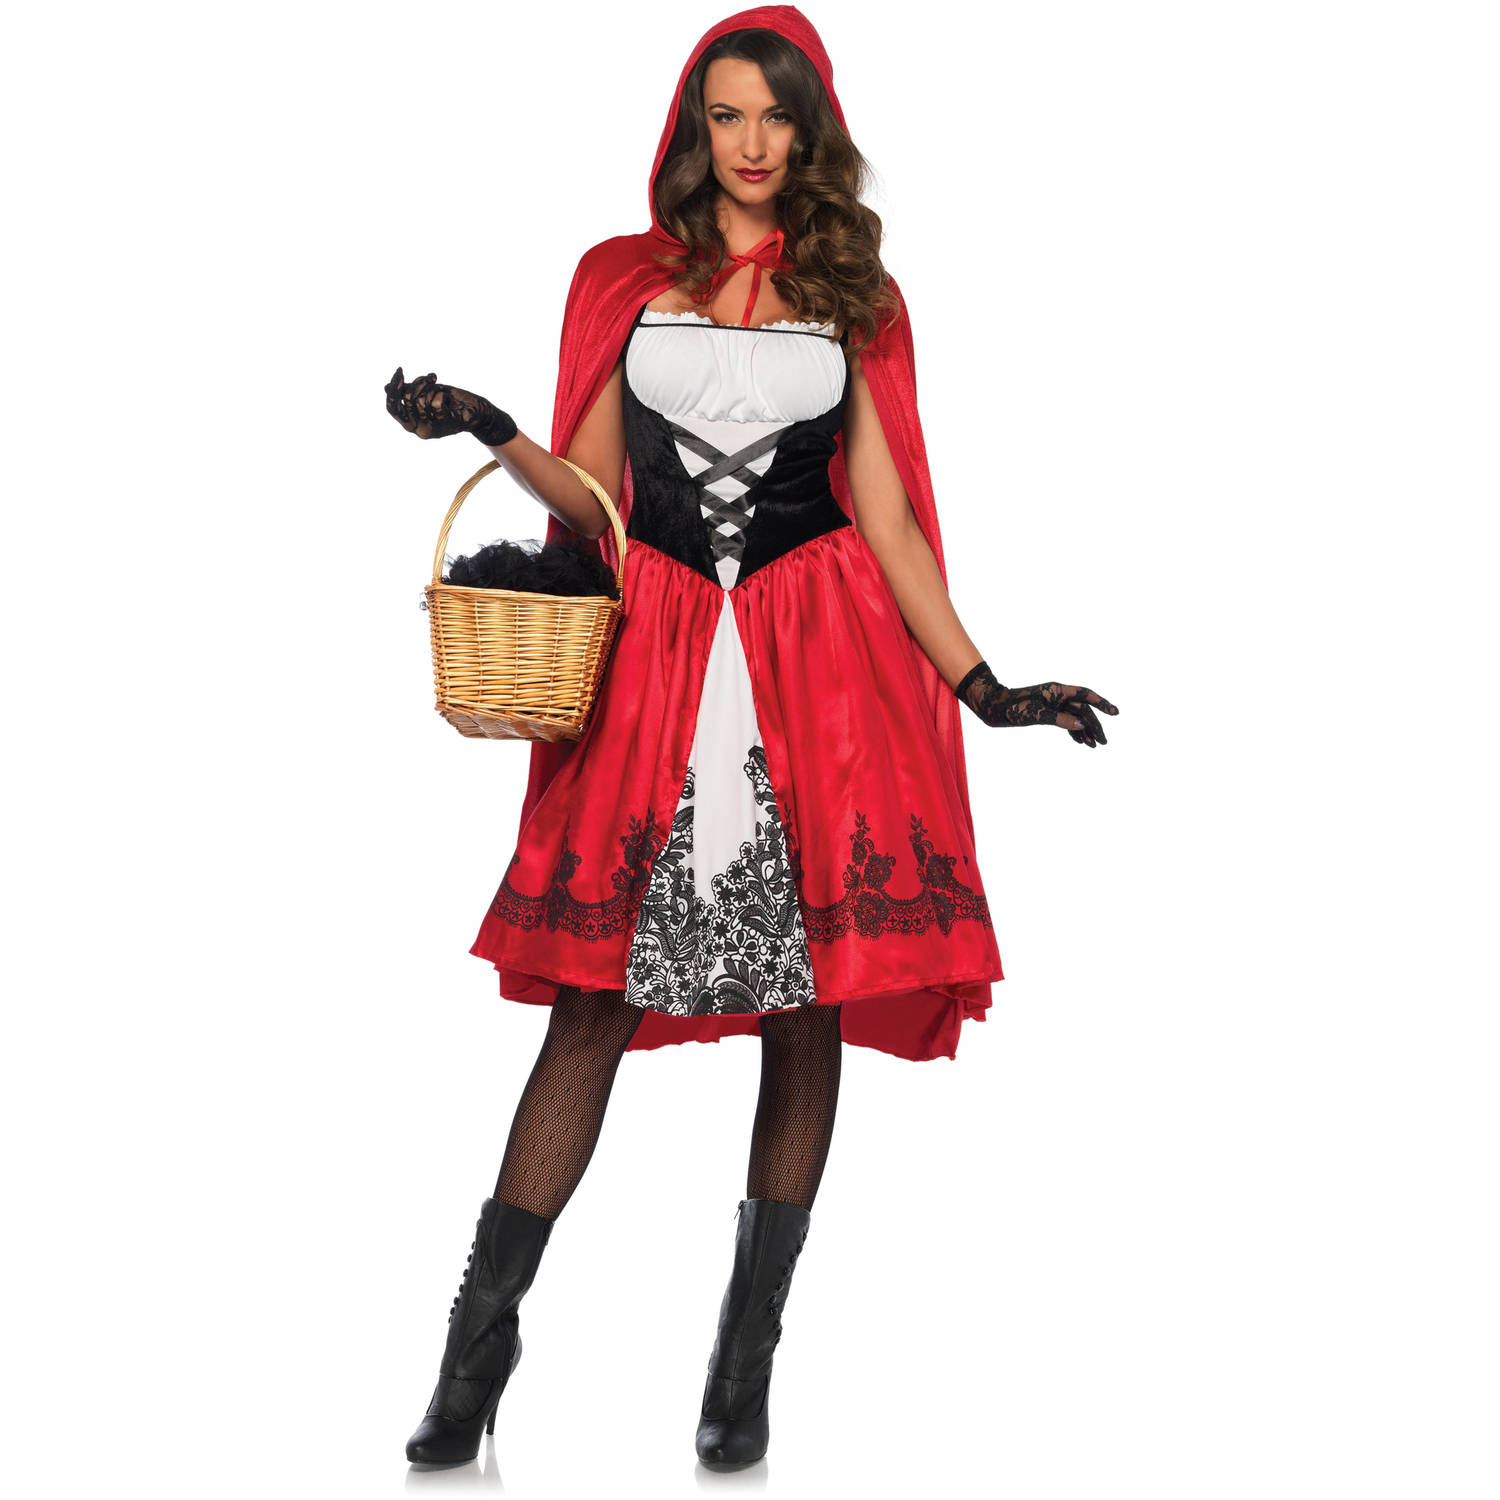 Leg Avenue Adult Classic Red Riding Hood 2-Piece Costume